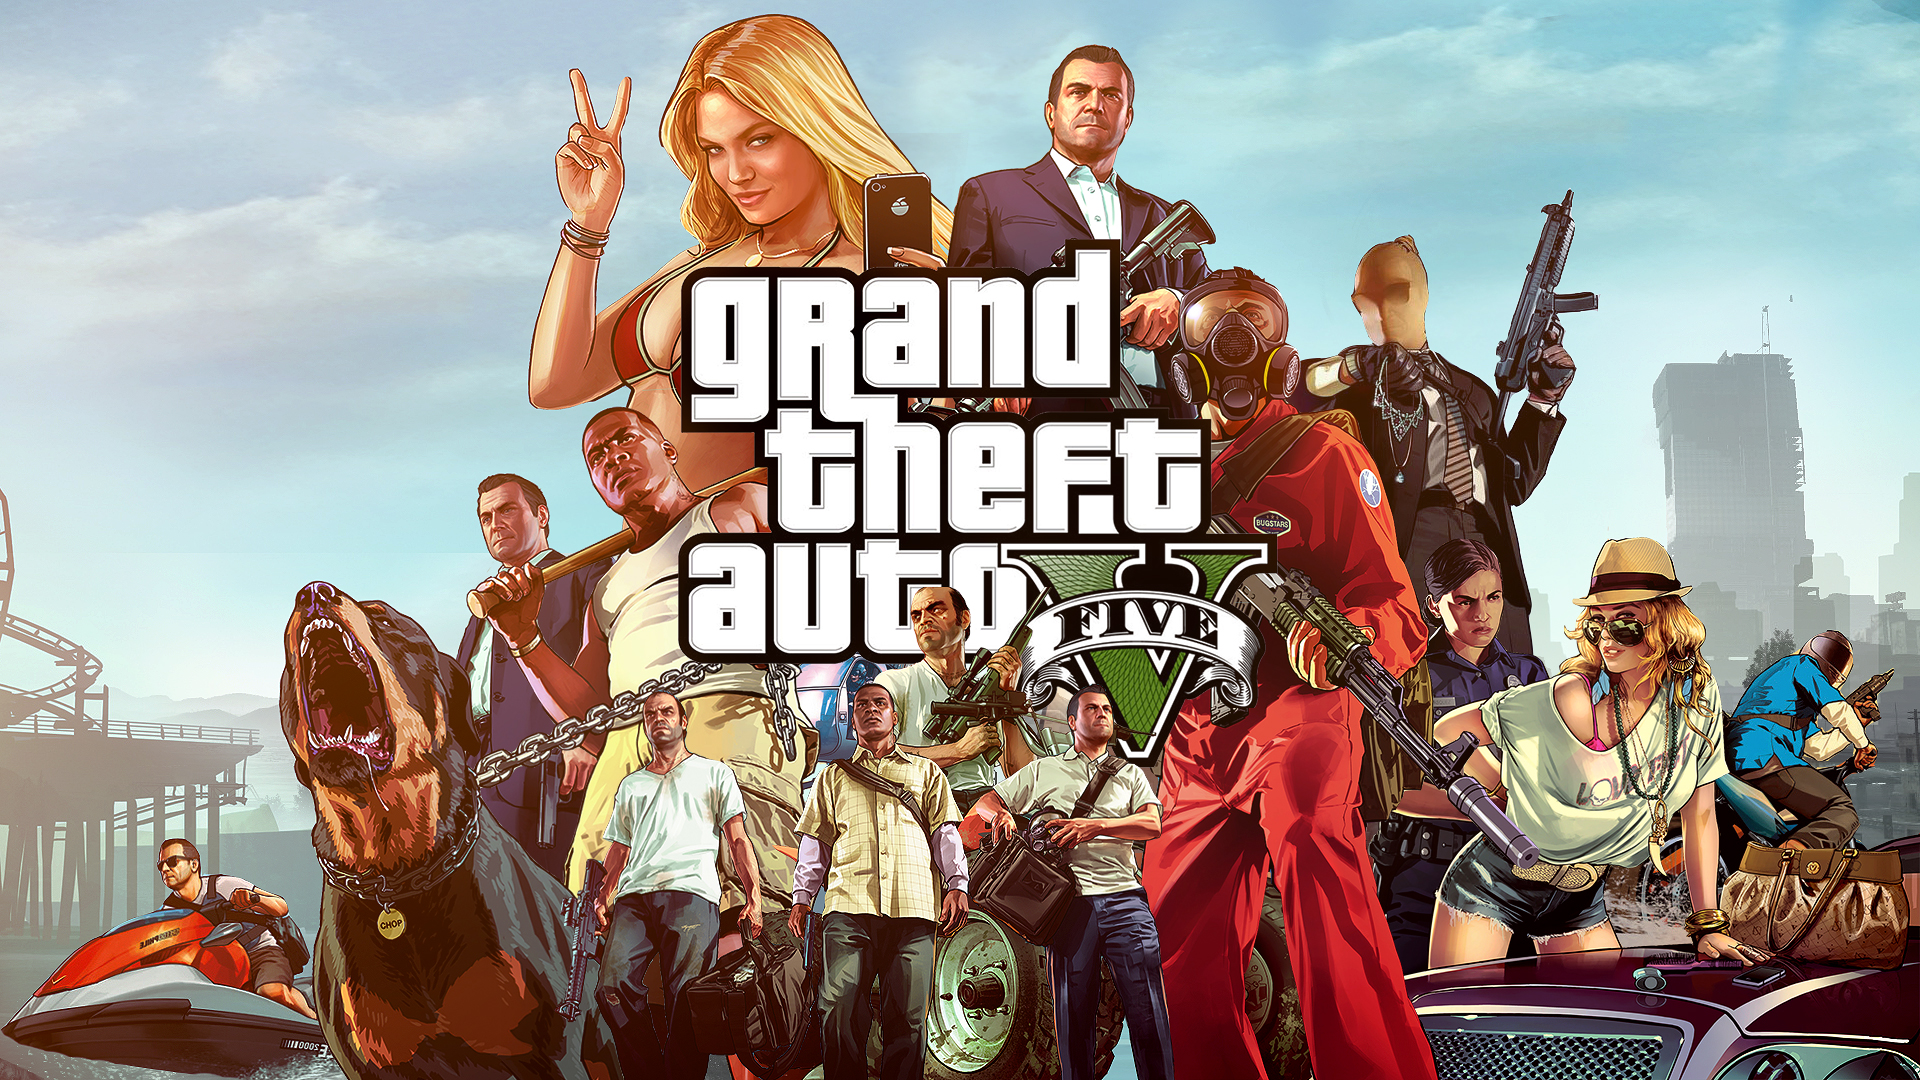 Grand Theft Auto V (PC) Review - GodisaGeek.com